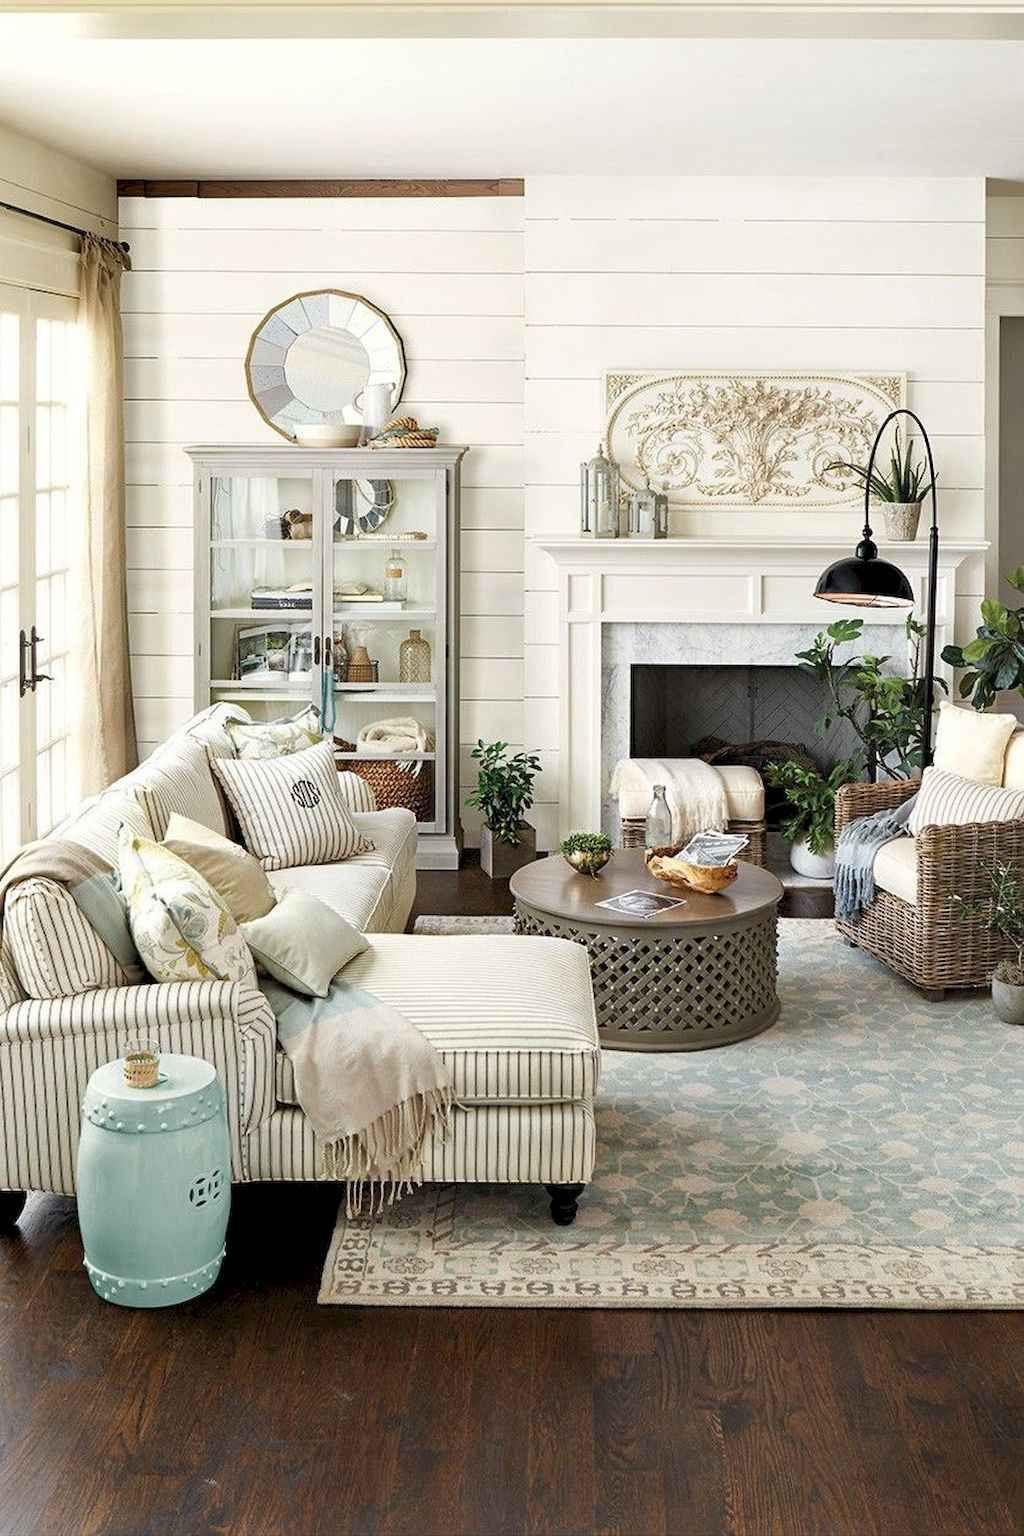 50 Cozy French Country Living Room Ideas In 2020 Farmhouse Decor